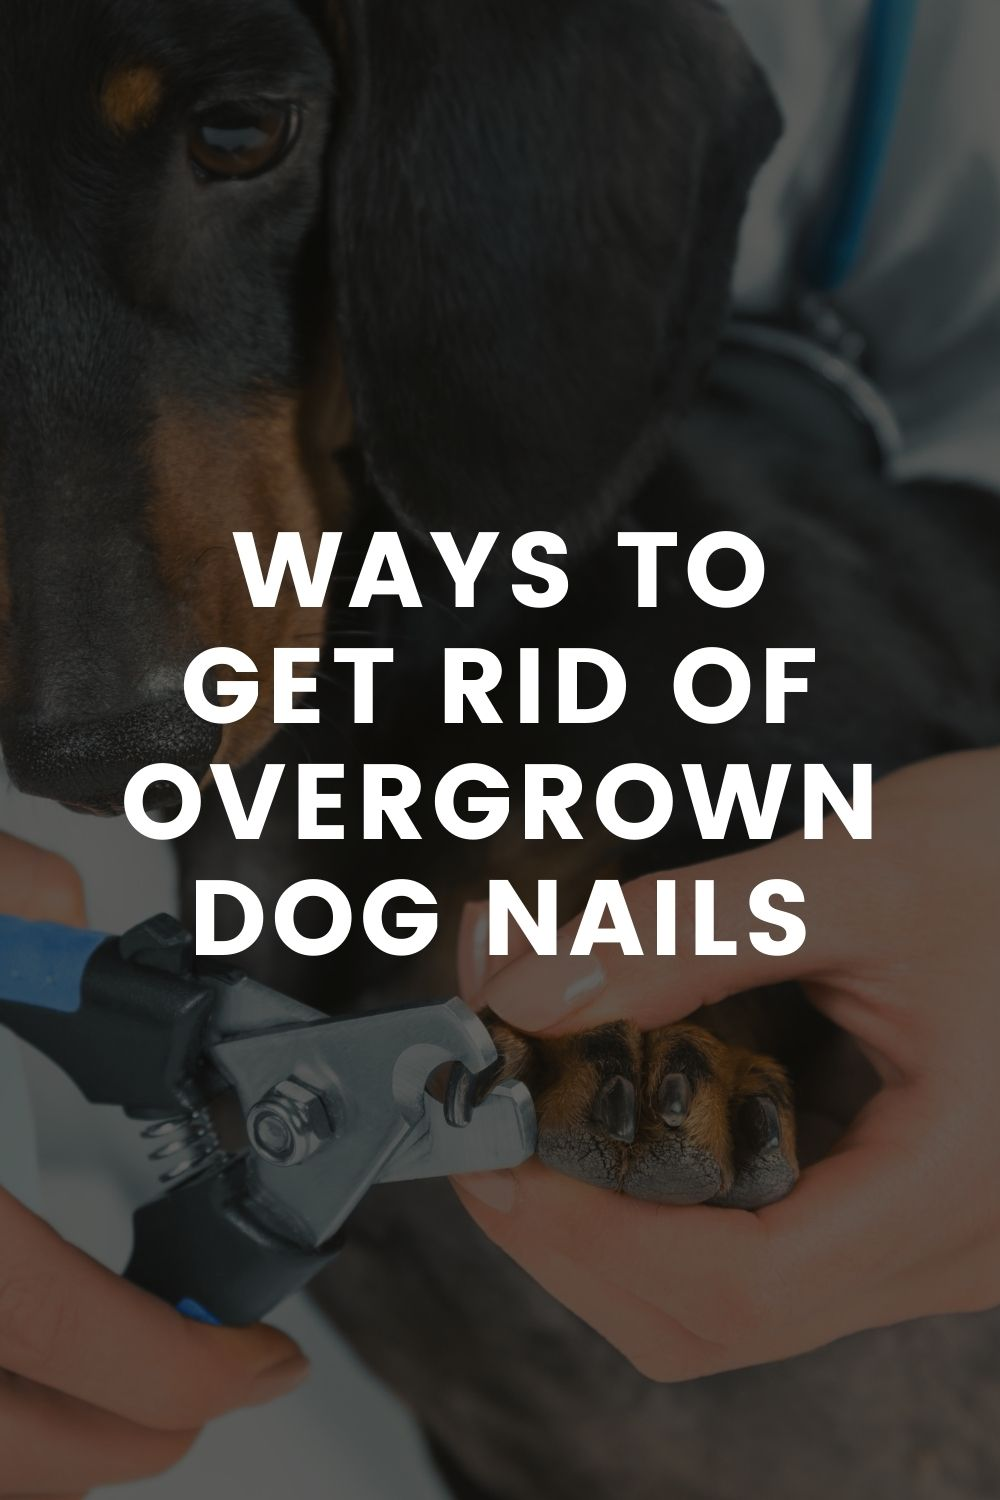 Ways to Get Rid of Overgrown Dog Nails